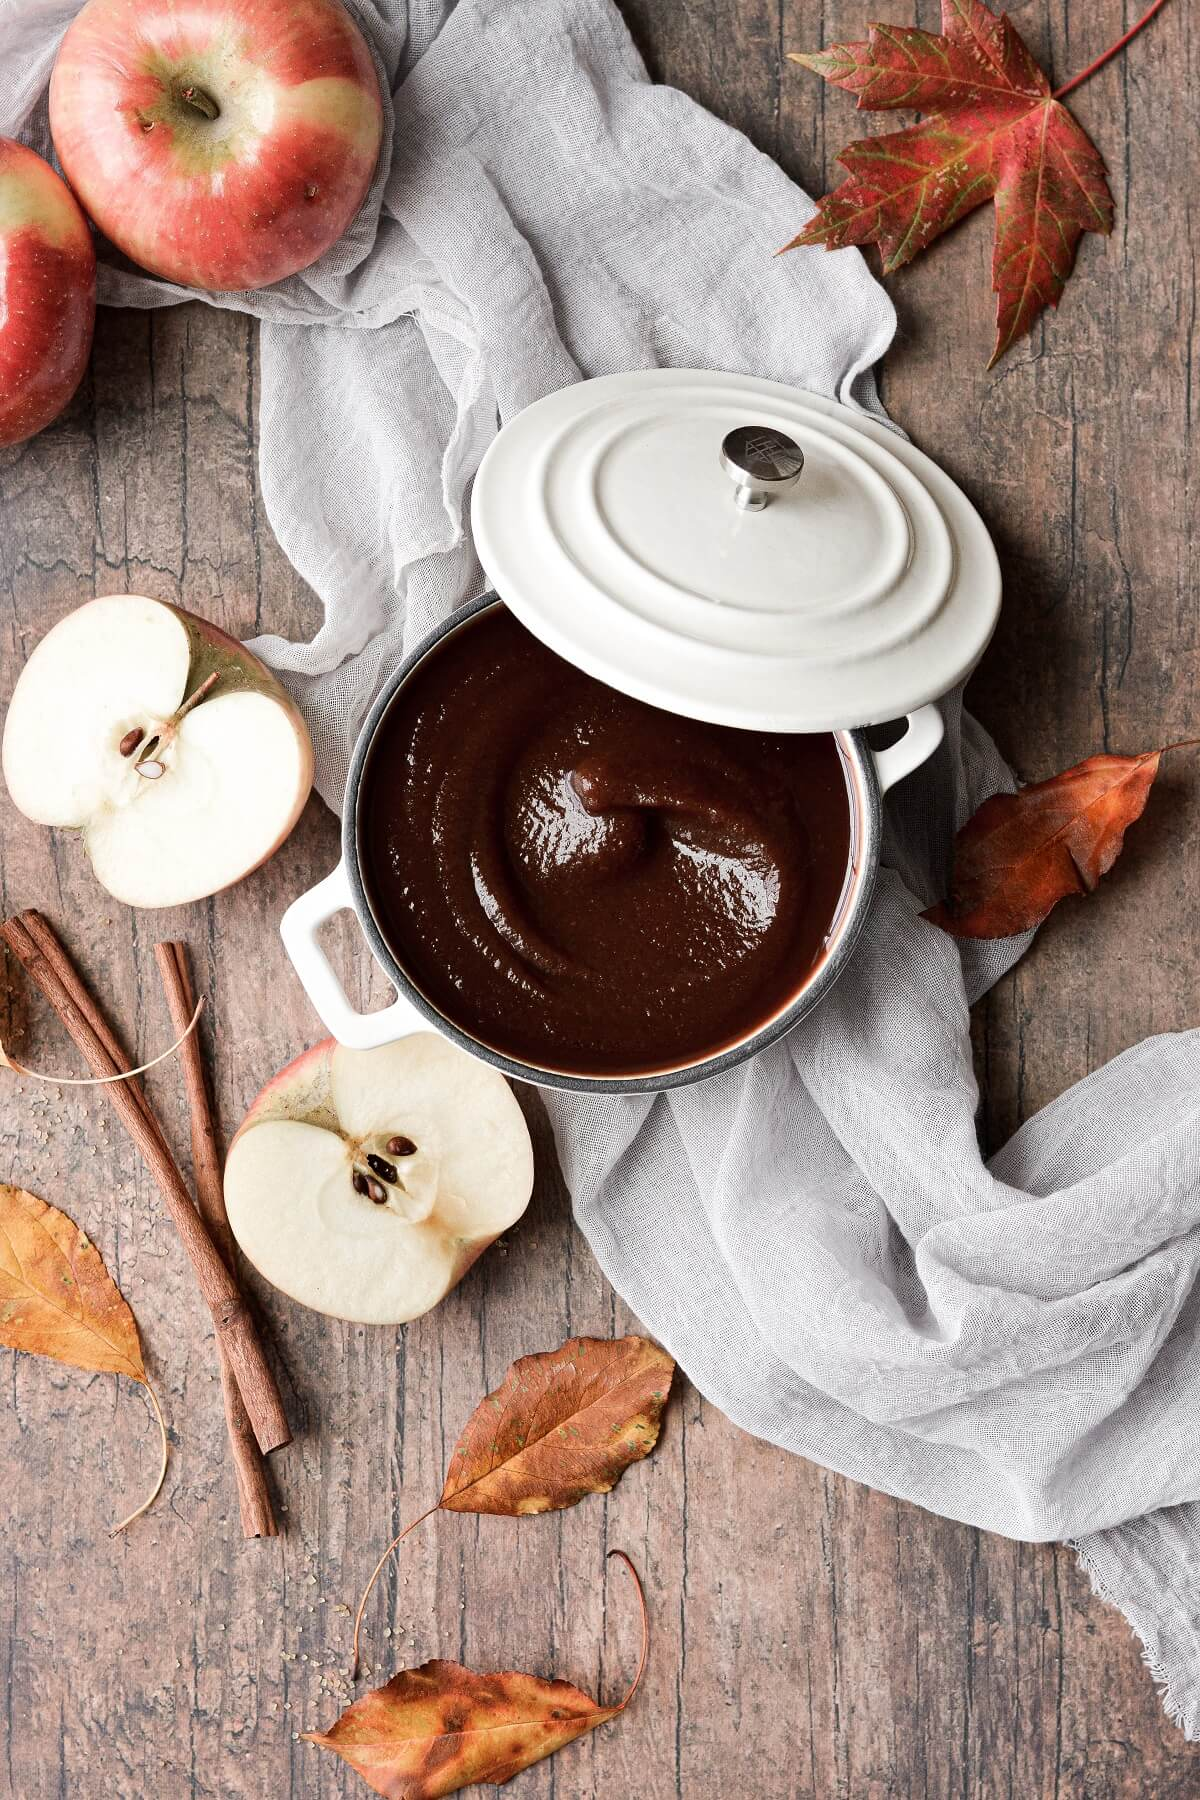 Apple butter in a white Dutch oven, surrounded by apples and leaves.